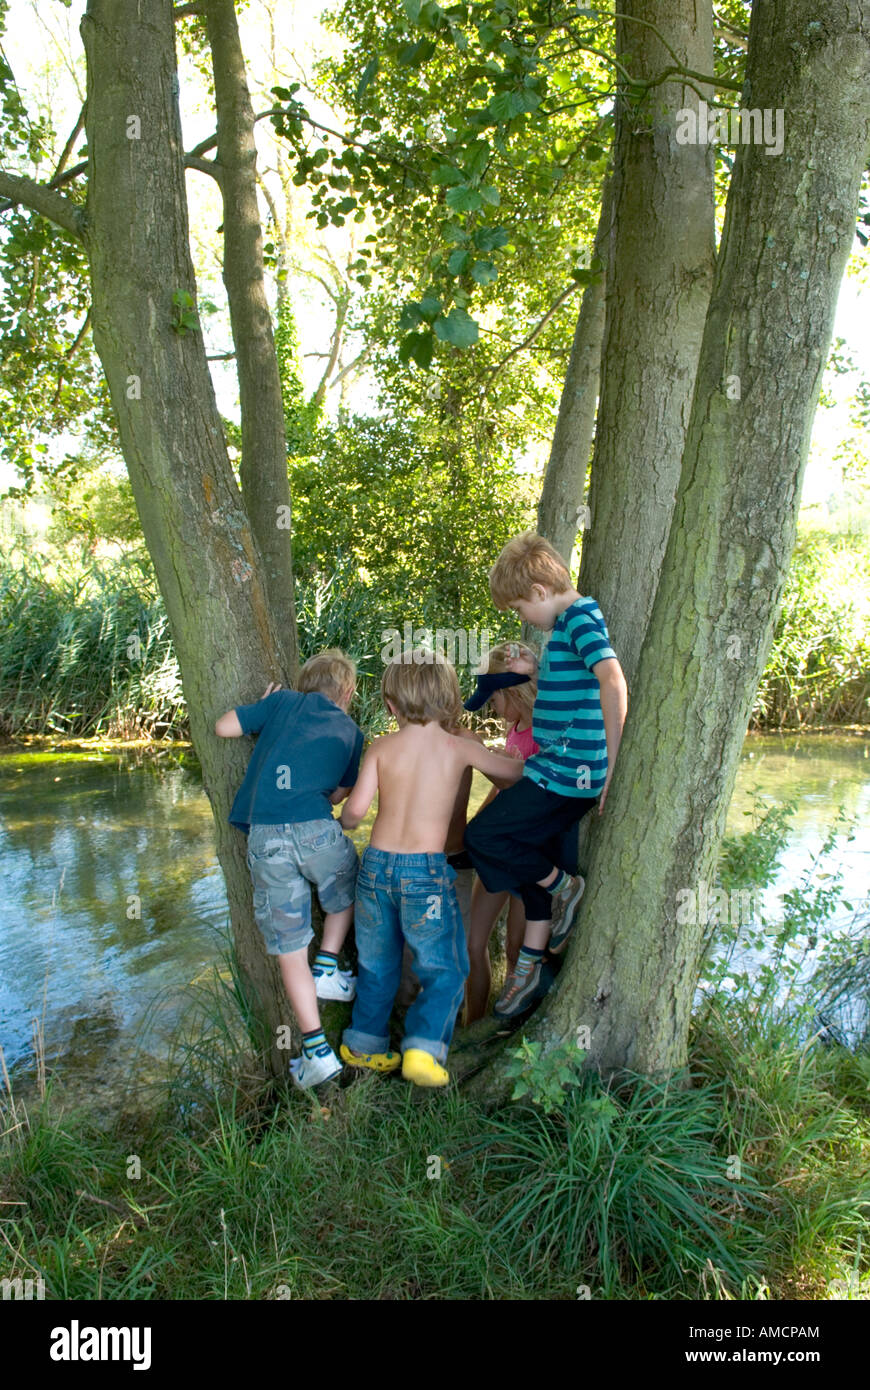 a group of children gather in between some tree trunks to look at passing river - Stock Image